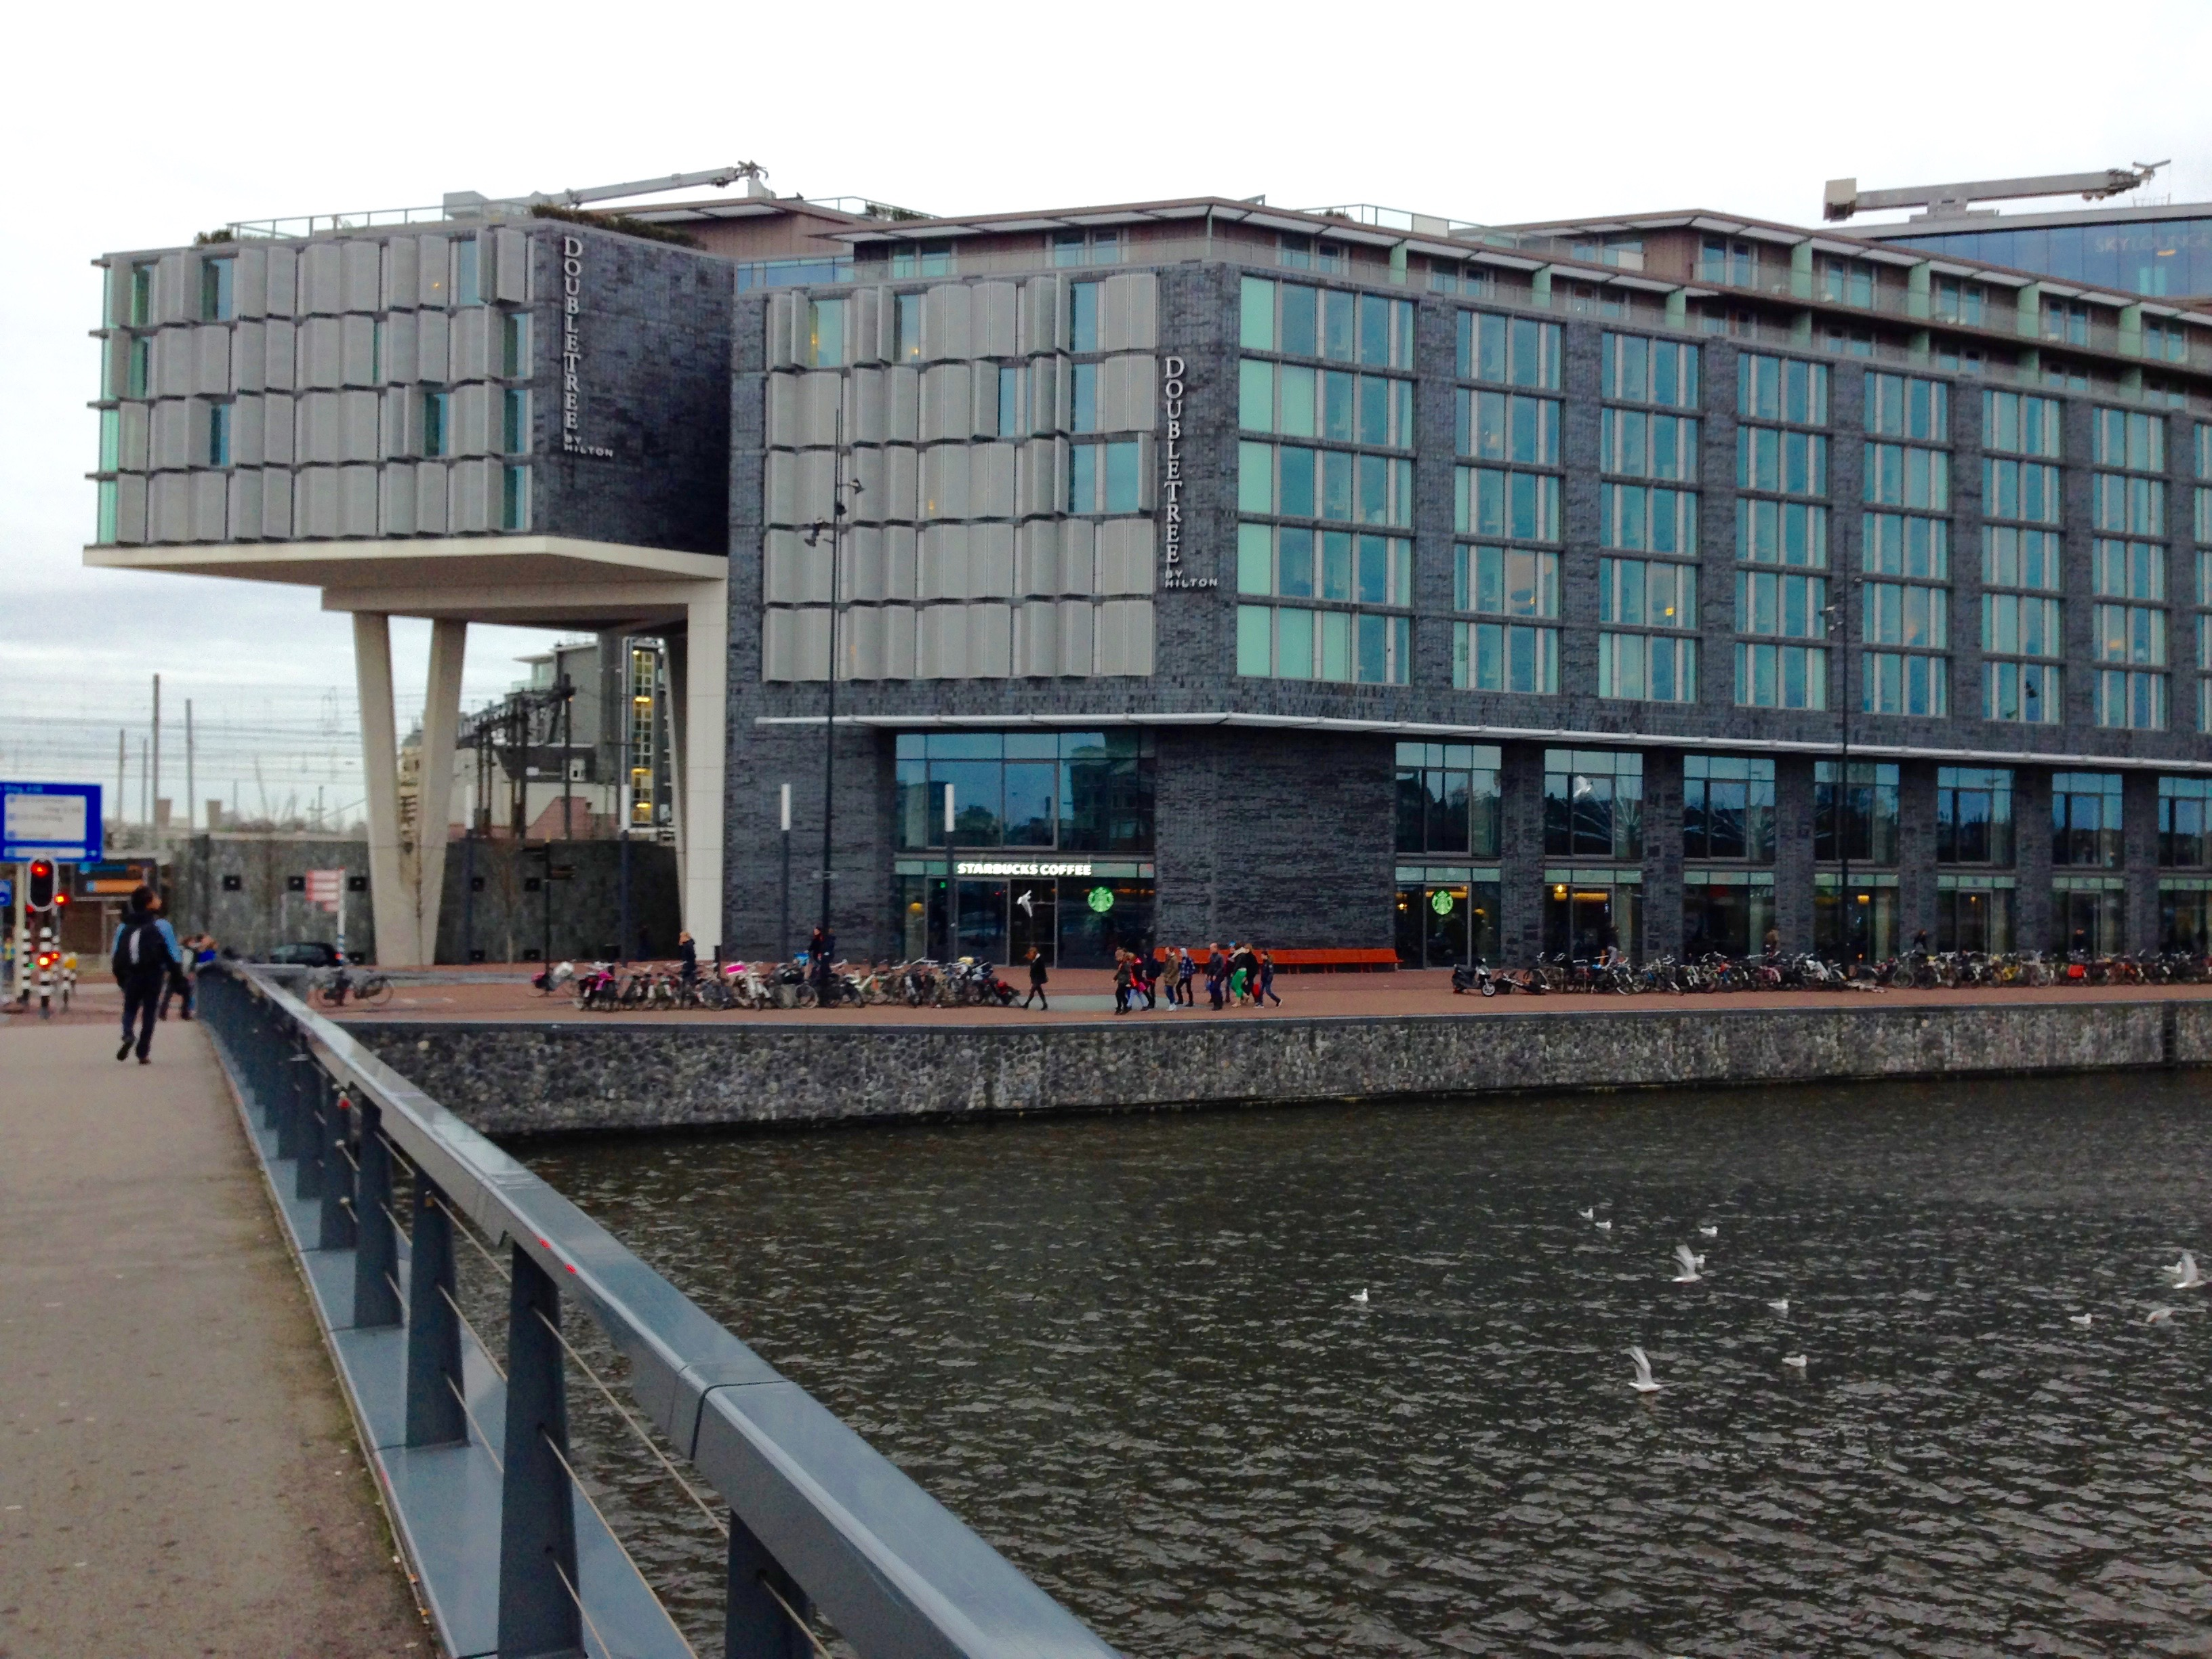 Doubletree by Hilton Amsterdam Centraal Station Exterior Hotel View